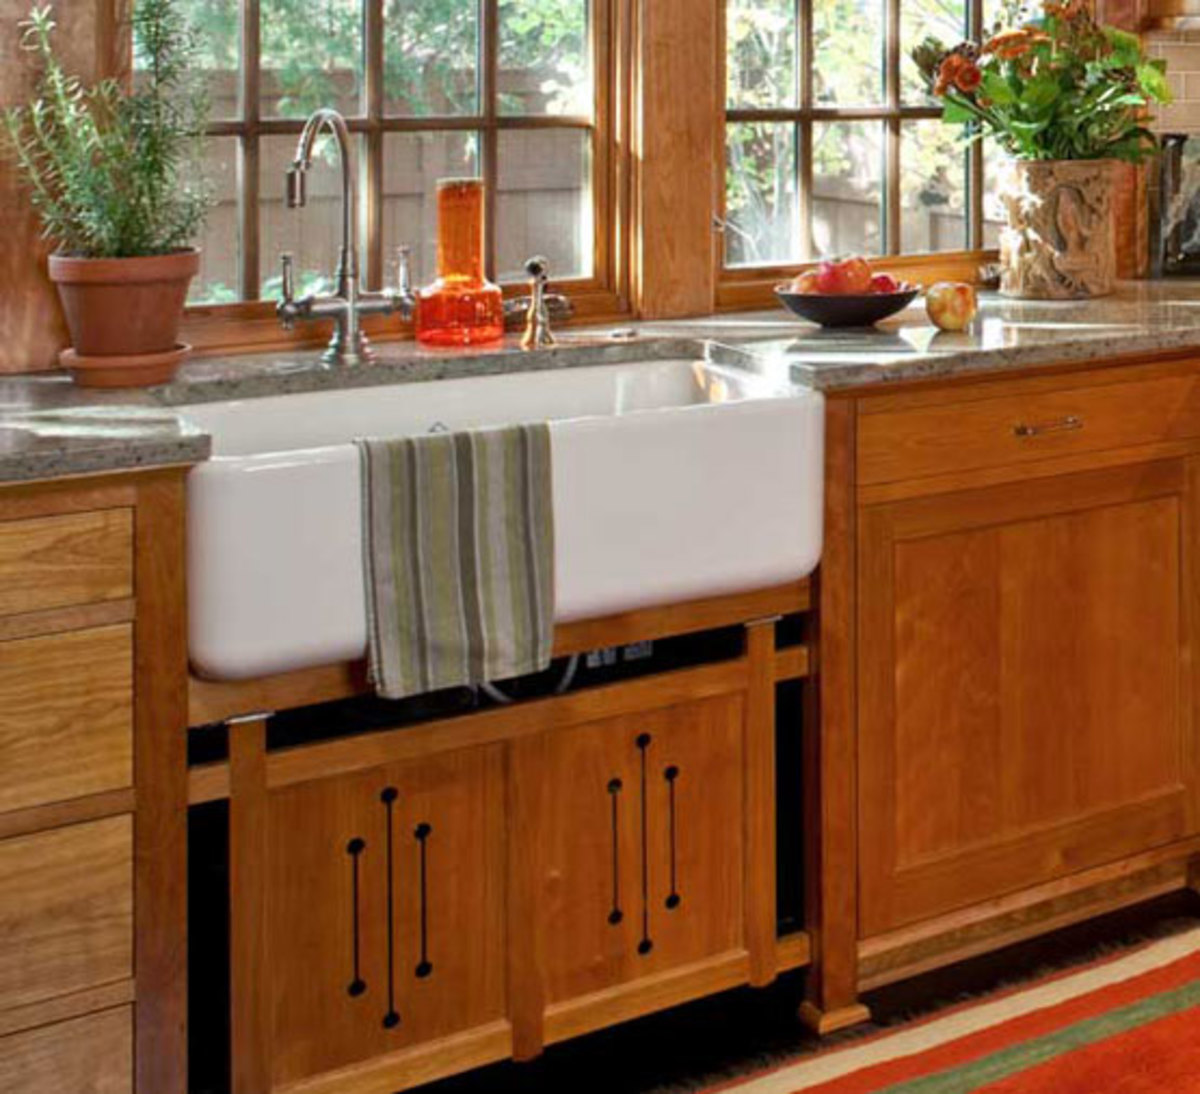 Kitchen Cabinets Mission Style: Arts & Crafts Homes And The